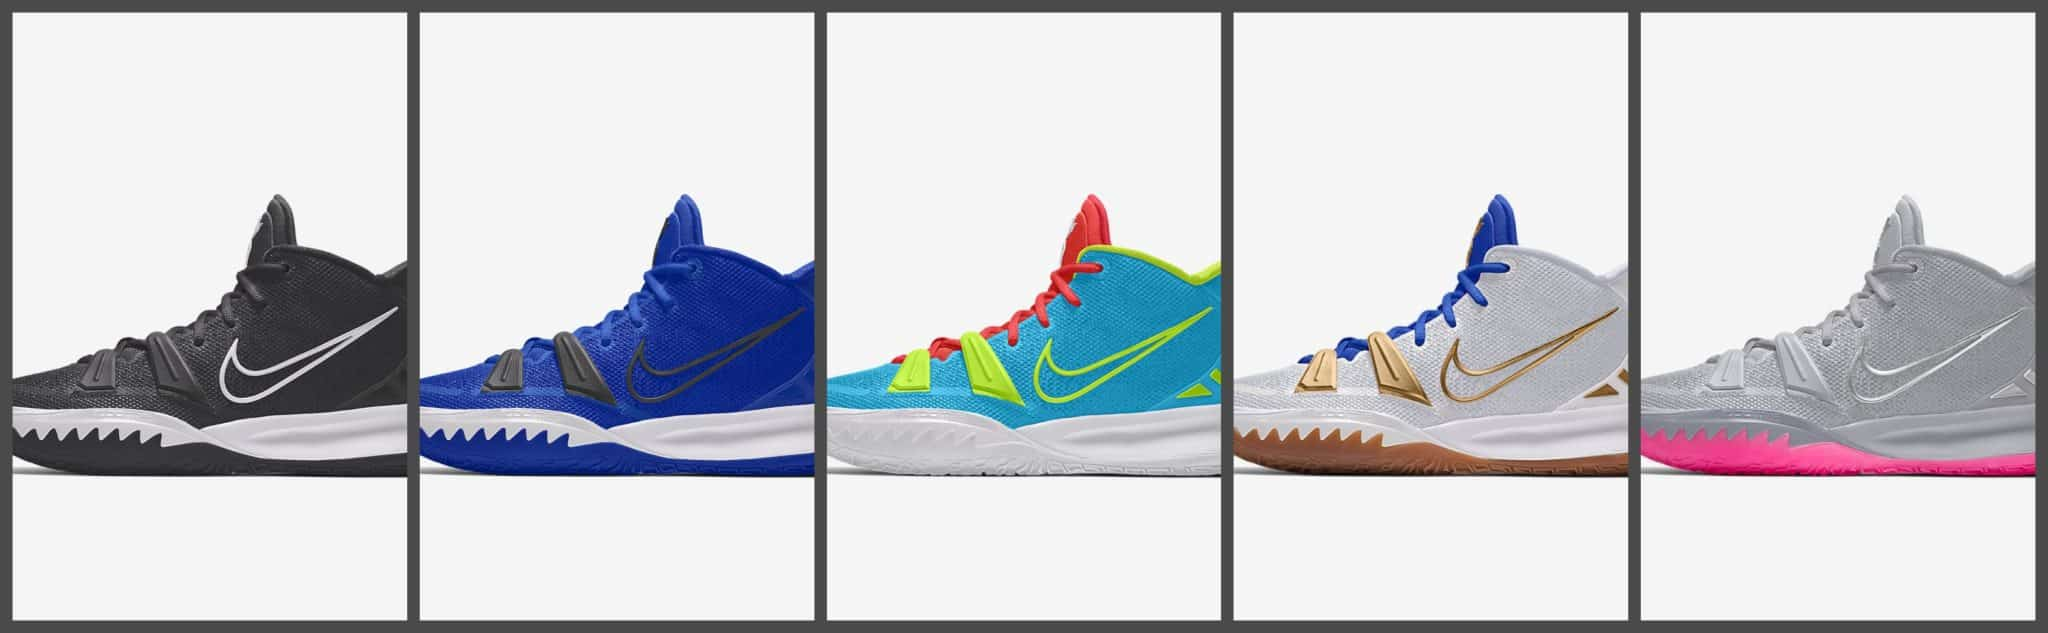 "Kyrie 7 ""by you"" collage"